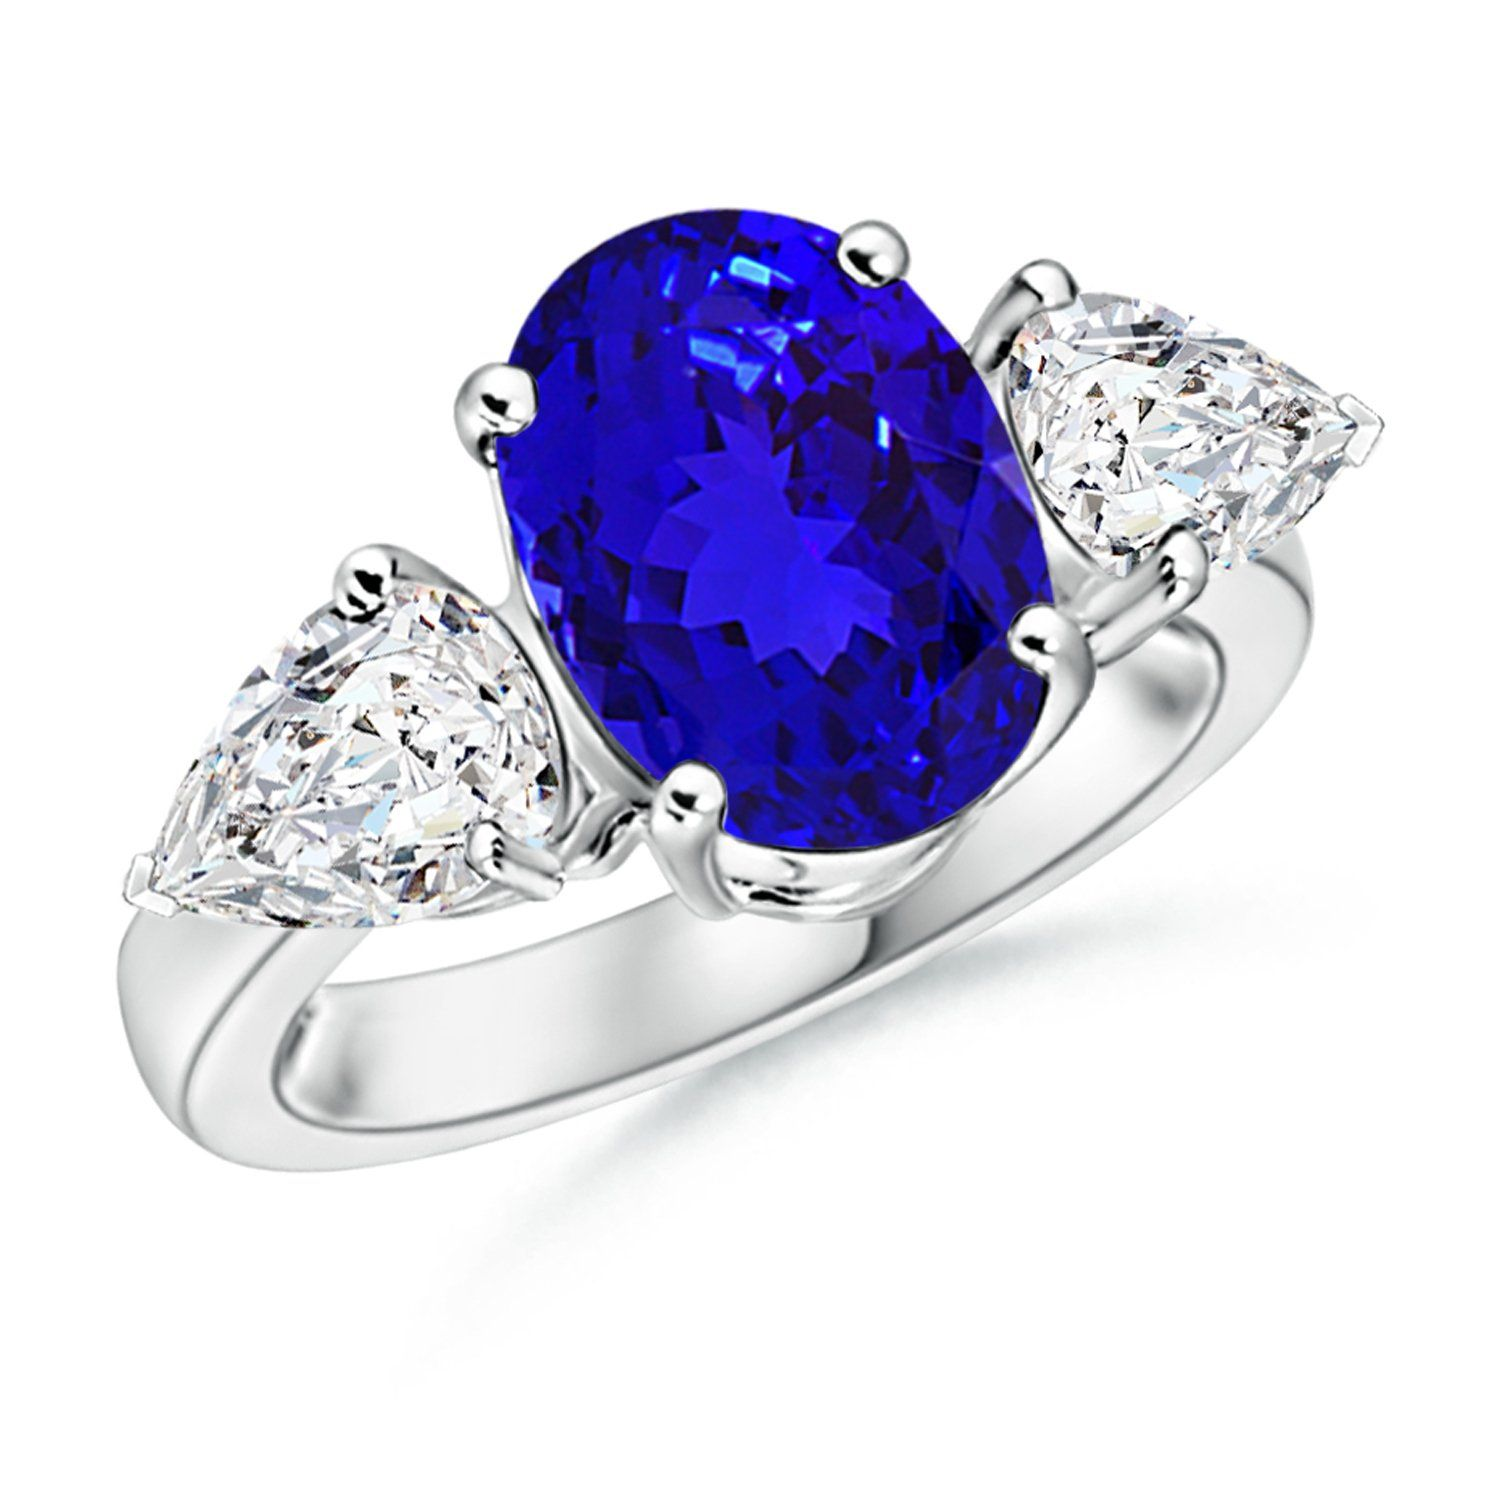 Angara Tanzanite and Diamond Cocktail Ring in Platinum